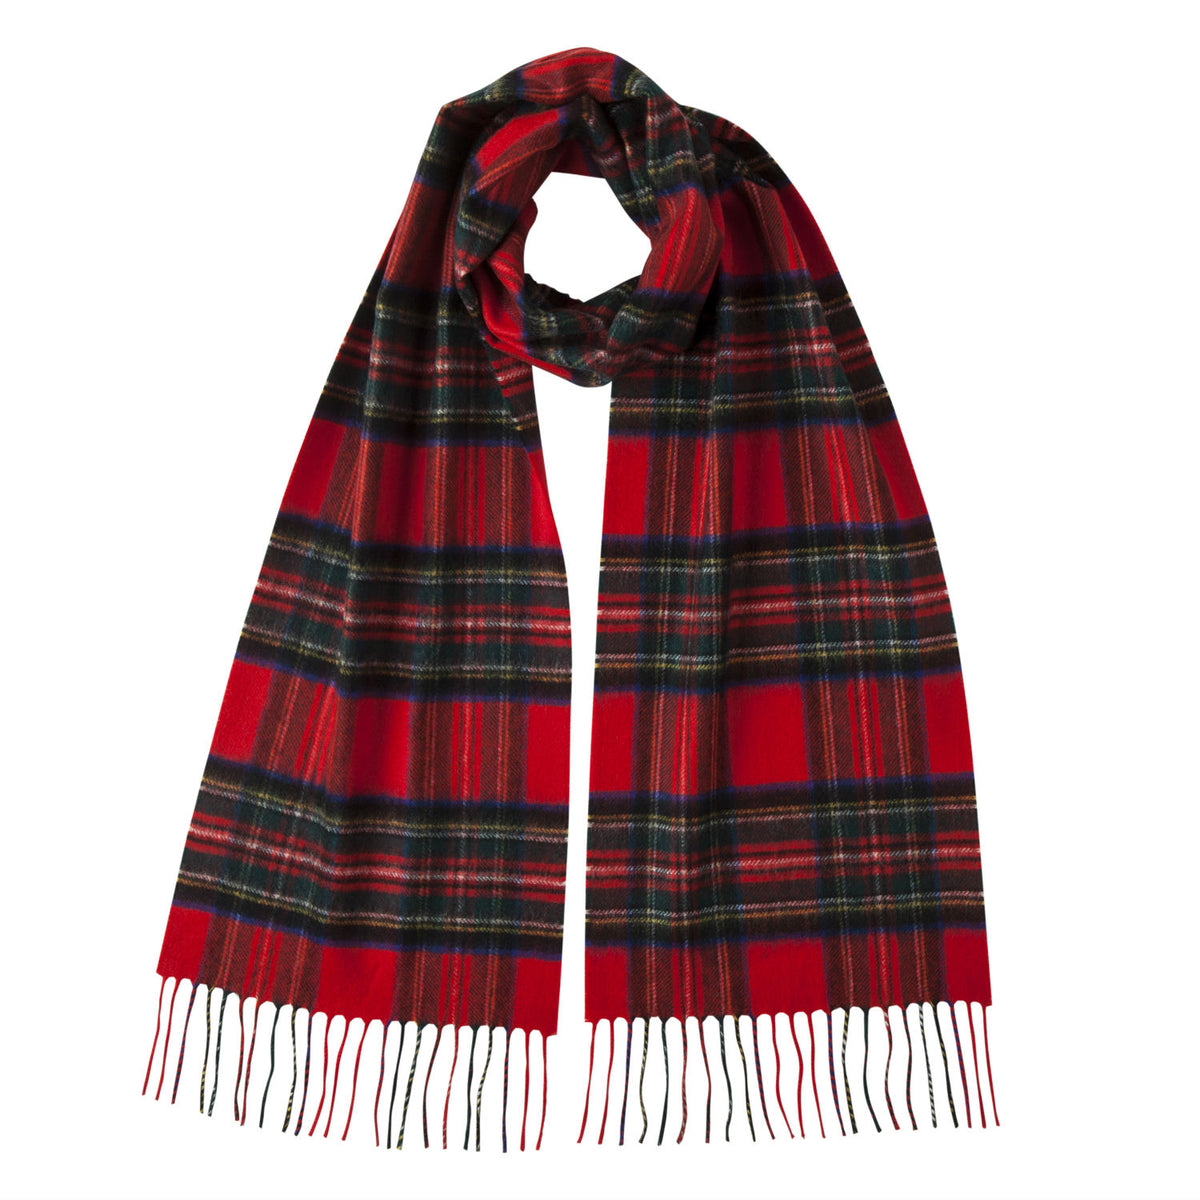 Johnsons of Elgin | Royal Stewart Tartan Check Cashmere Scarf | buy at The Cashmere Choice | London